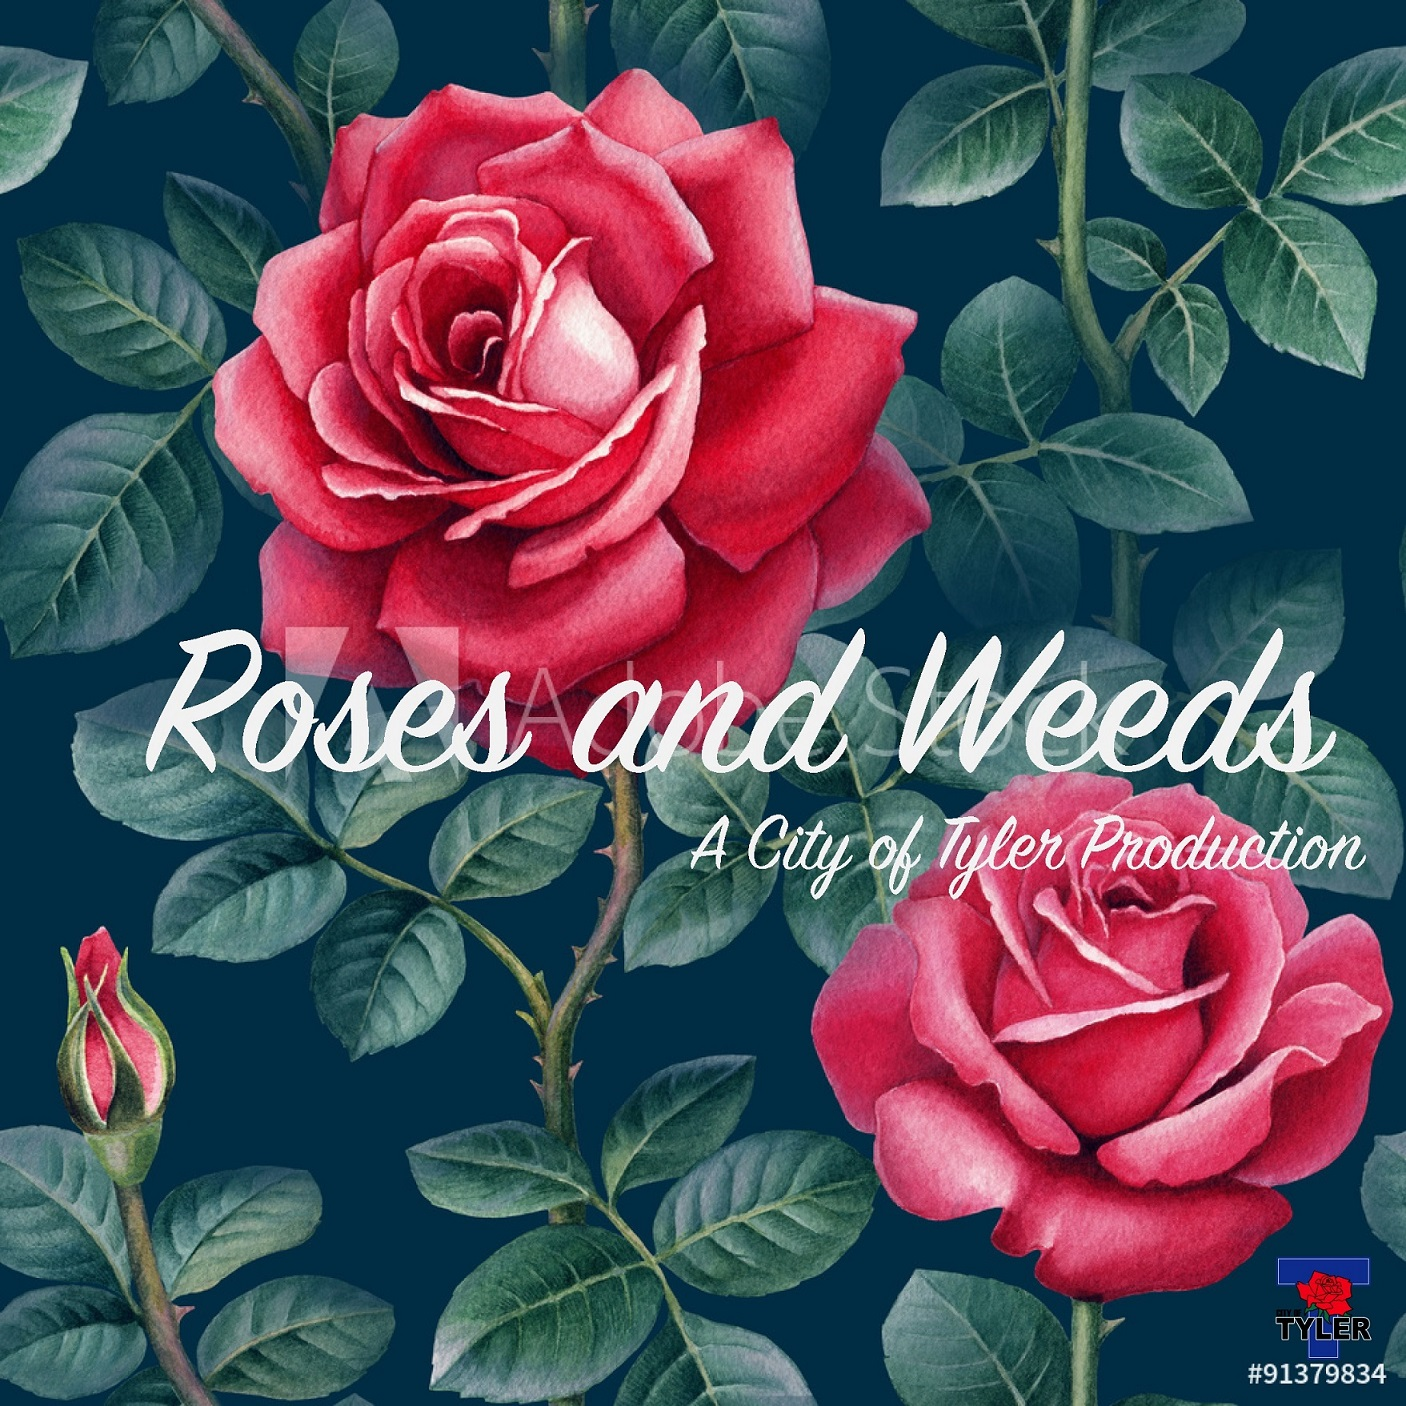 Roses and Weeds cover image